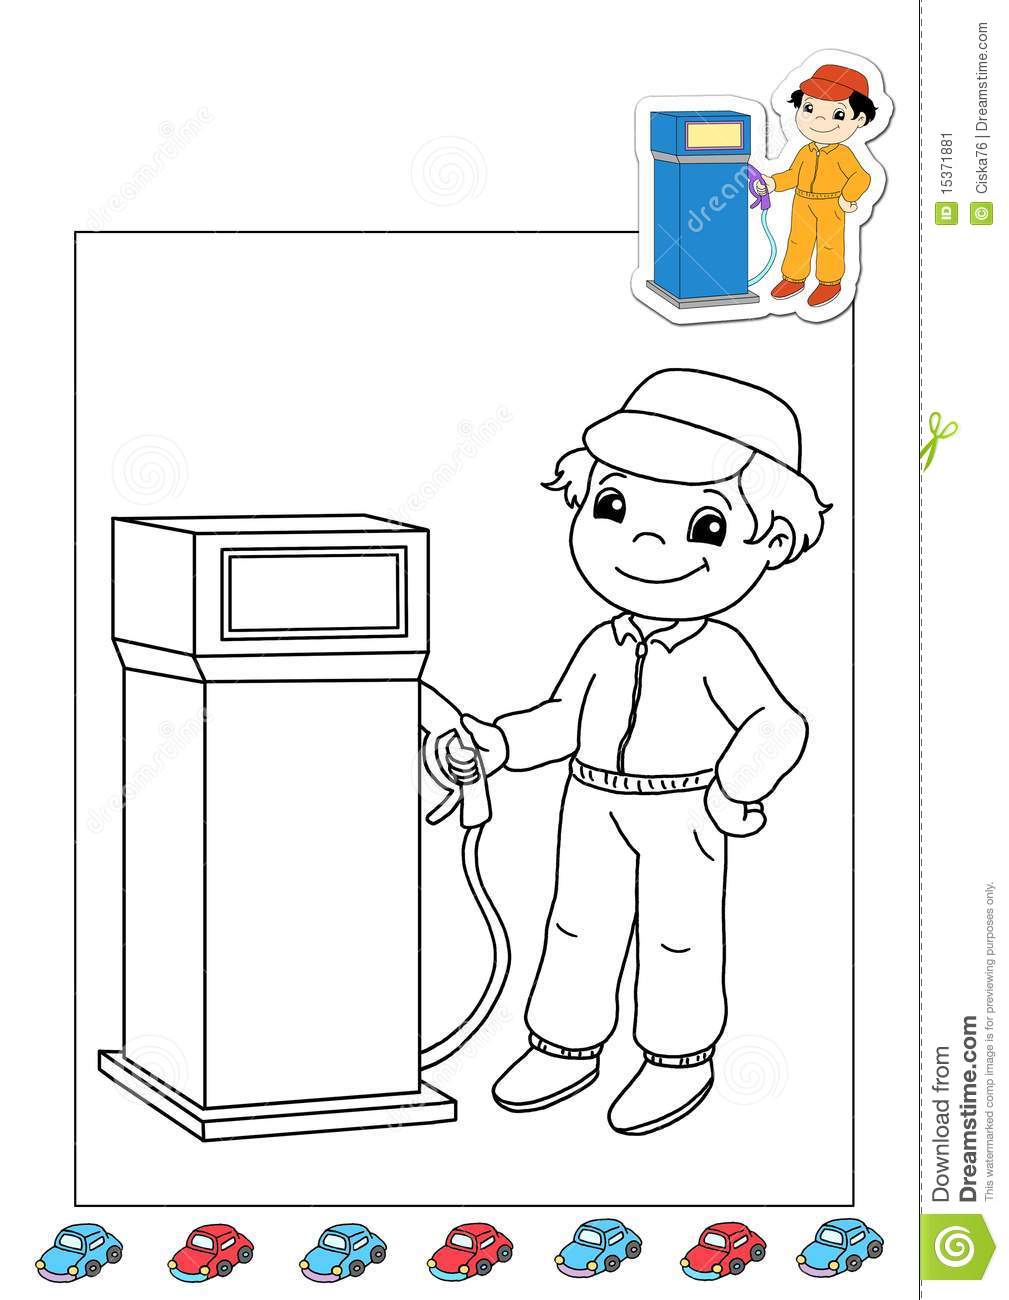 gas station coloring page - photo #9